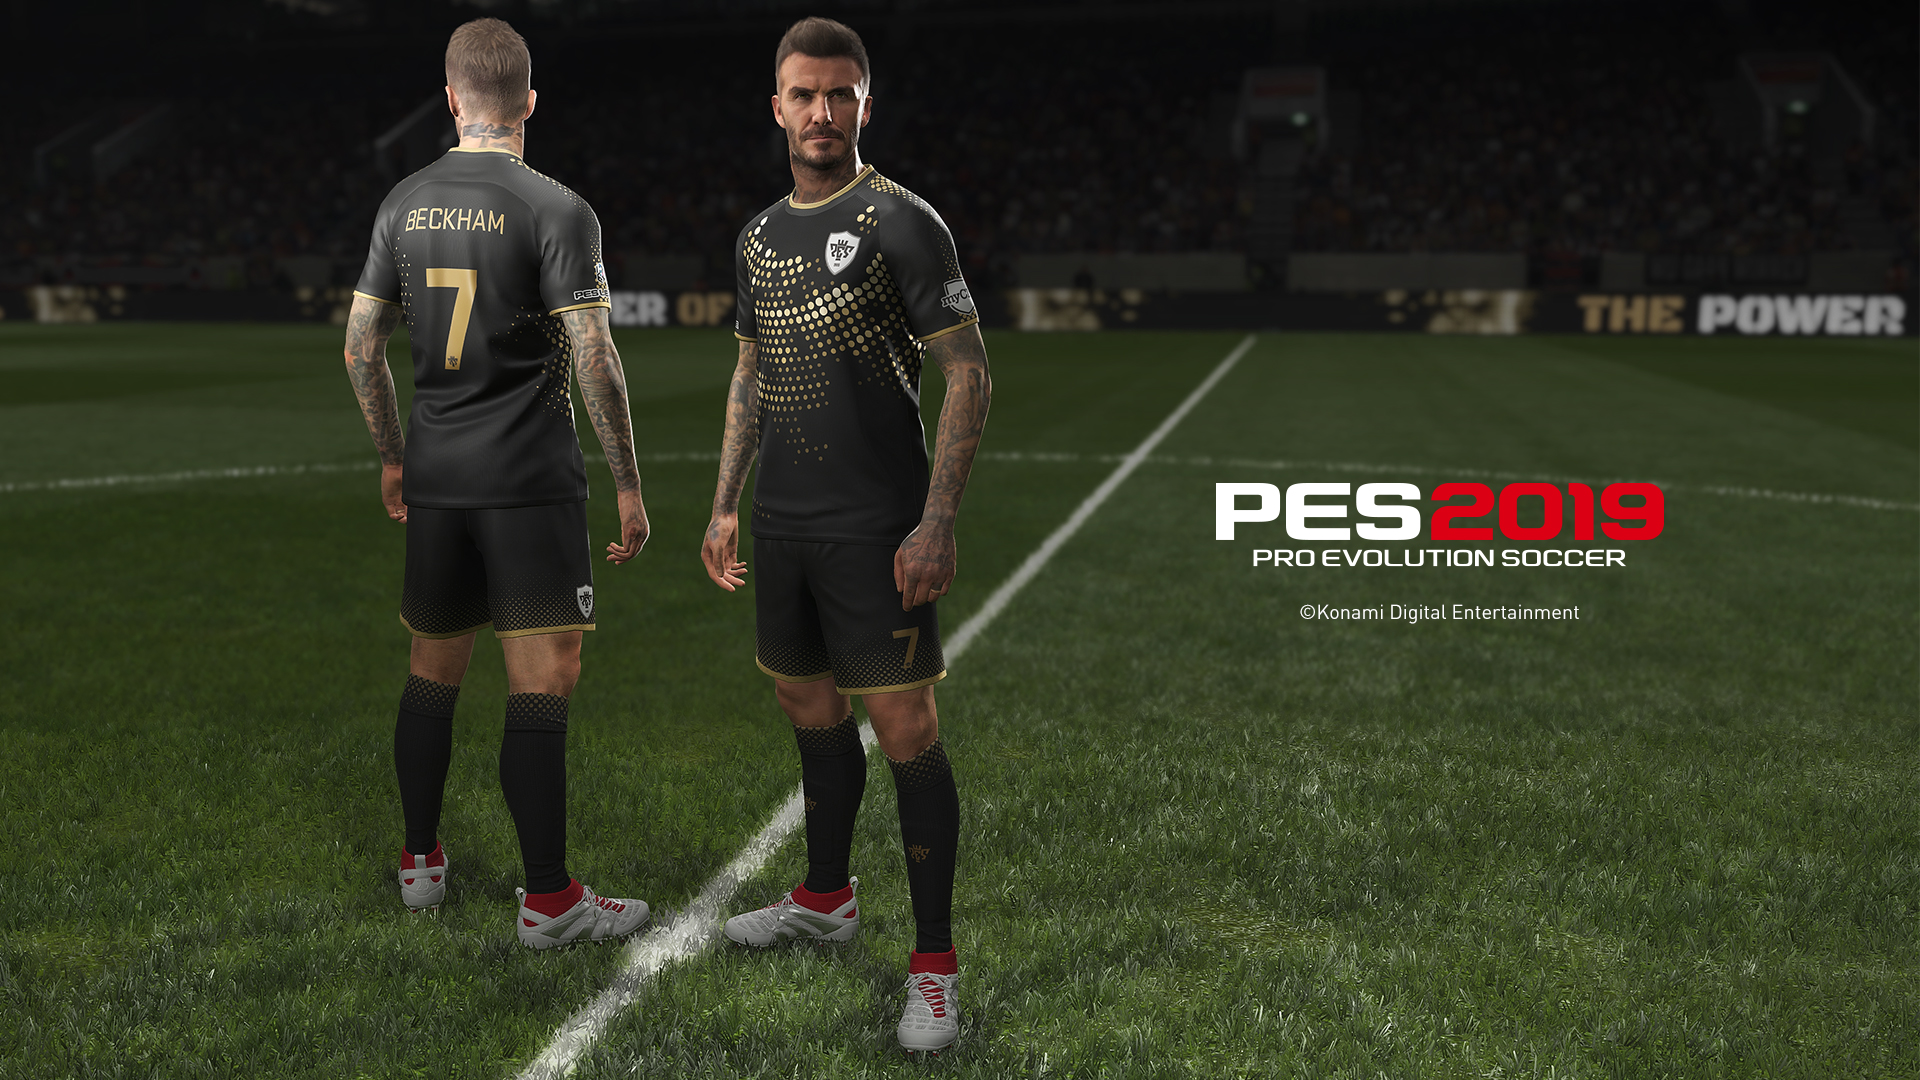 PES 2019 Konami Pro Evolution Soccer 2019 Fußball Simulation PS4 Xbox One Game Test Review Kritik Legenden